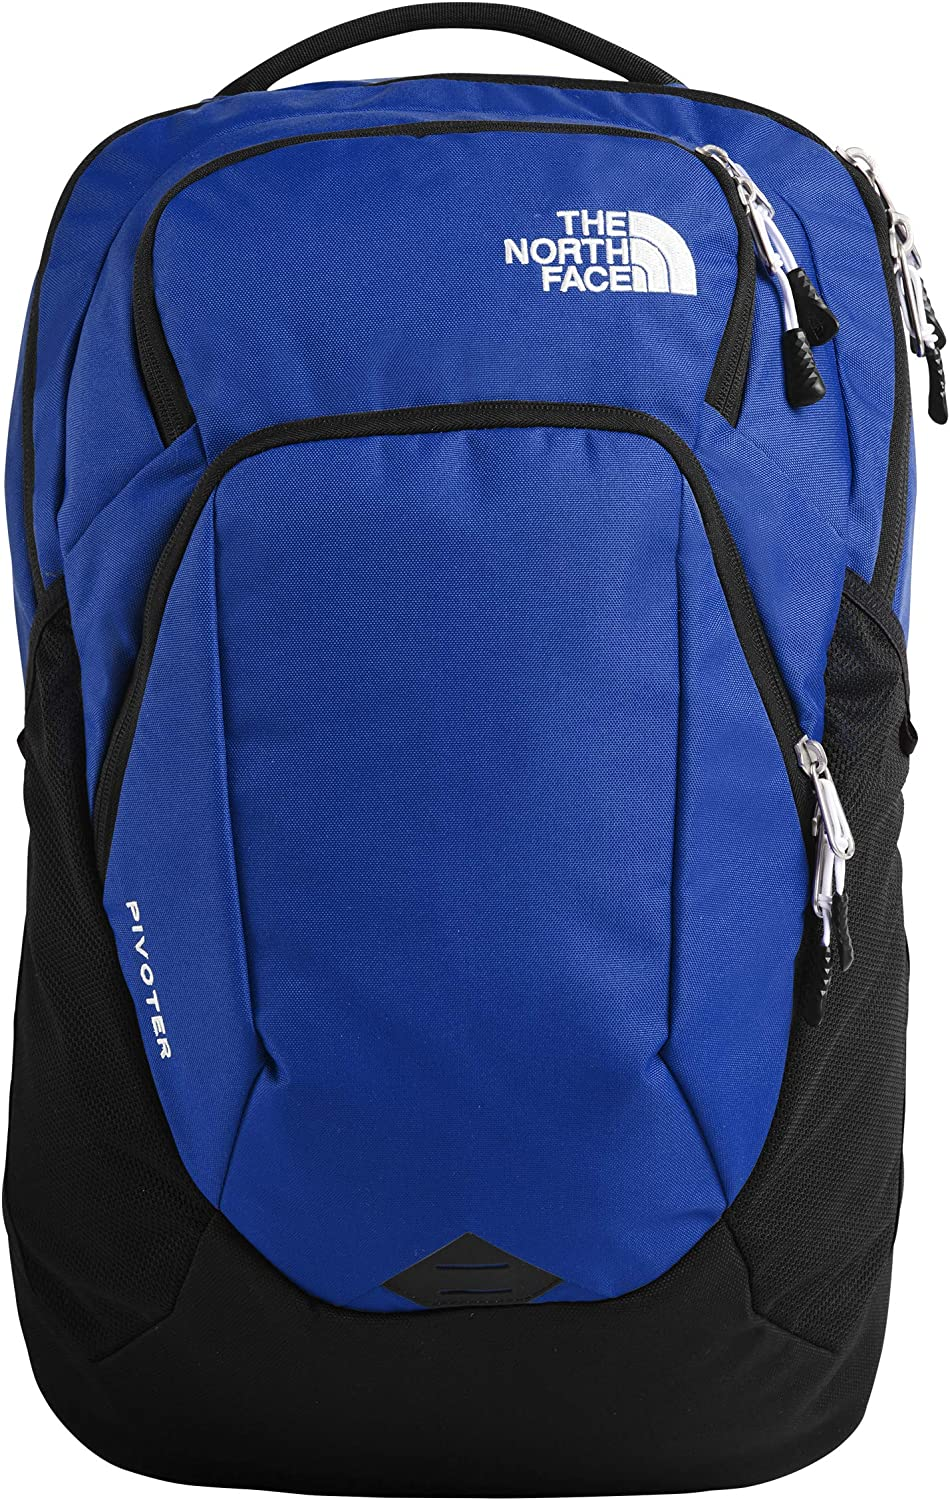 The North Face Pivoter Backpack, TNF Blue/TNF Black, One Size